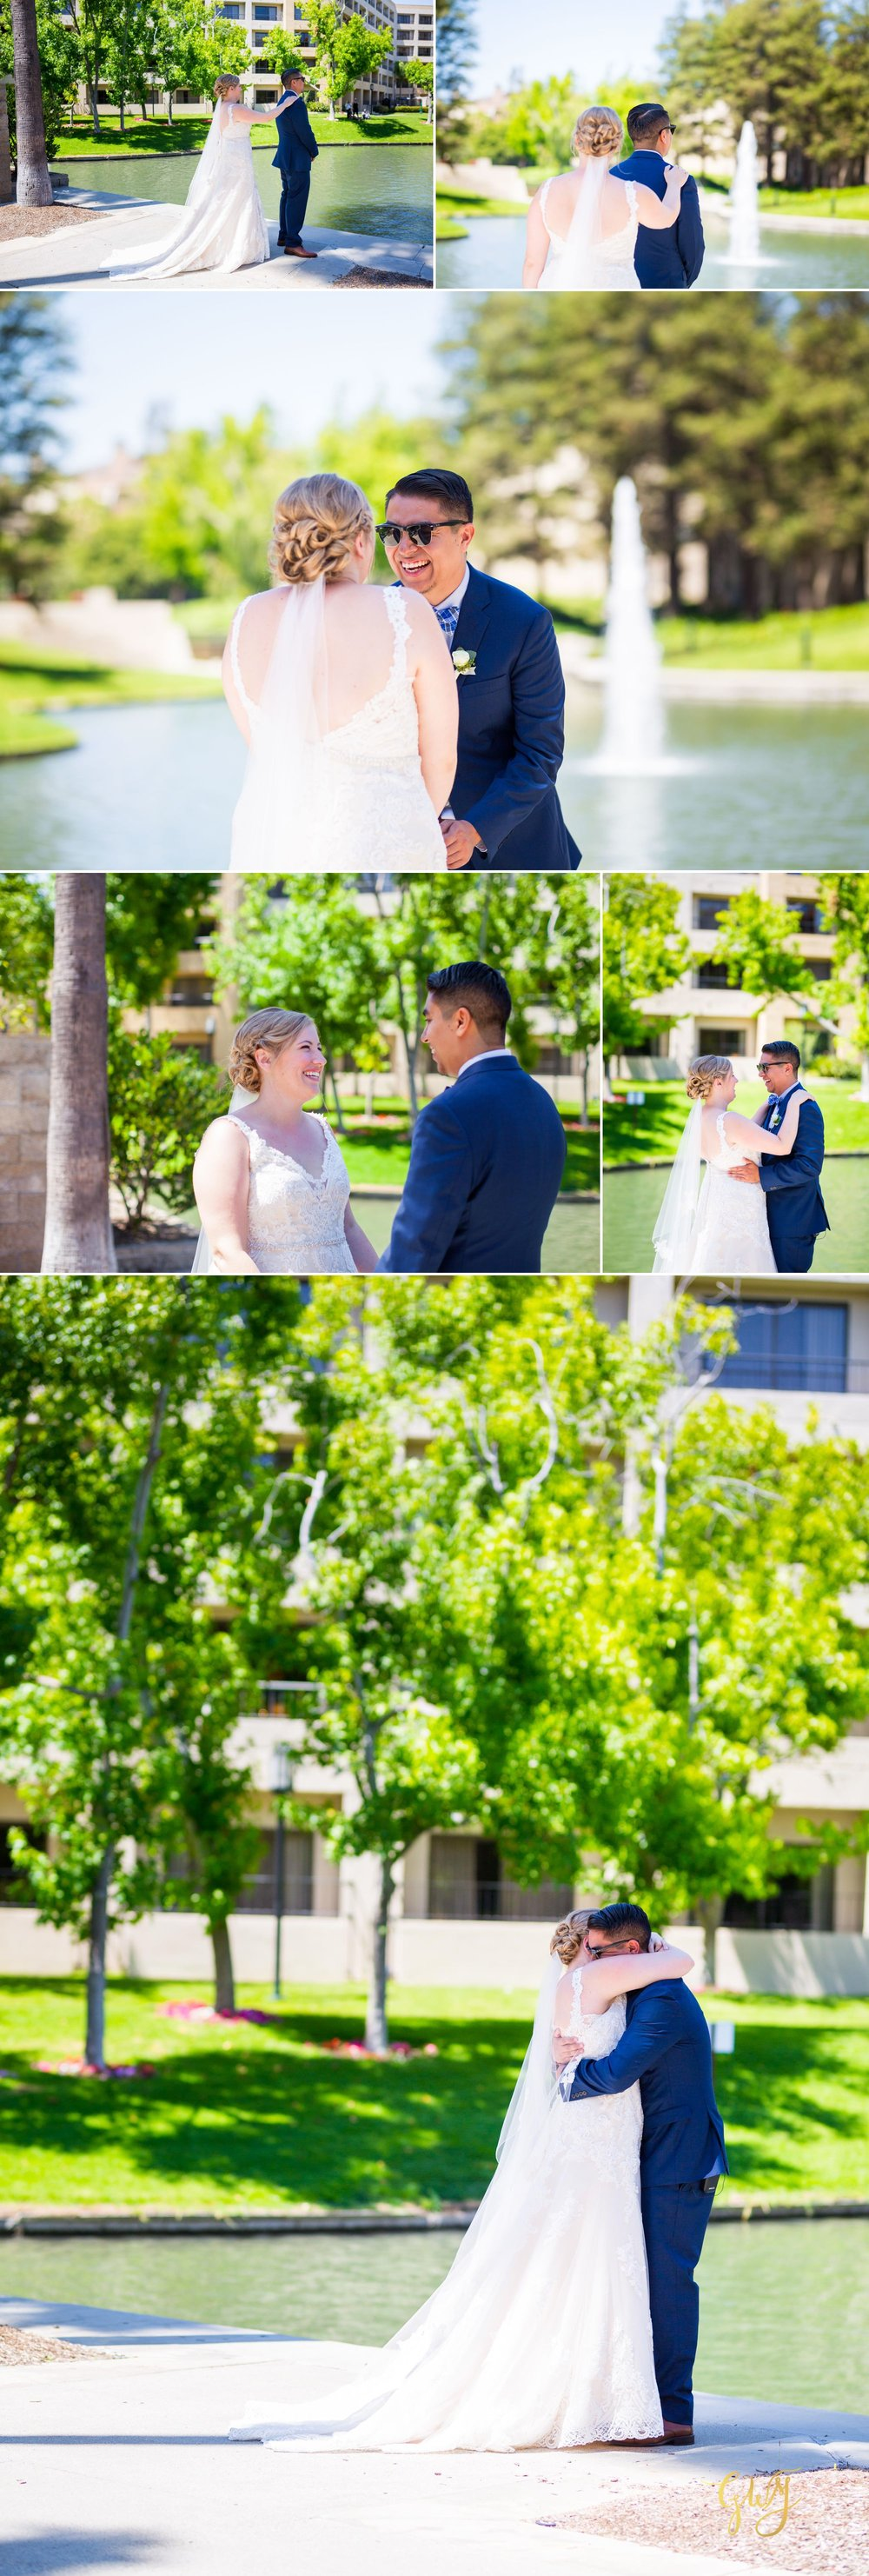 Javier + Kari Avenue of the Arts First Look Vintage Rose Wedding Ceremony Reception by Glass Woods Media 6.jpg